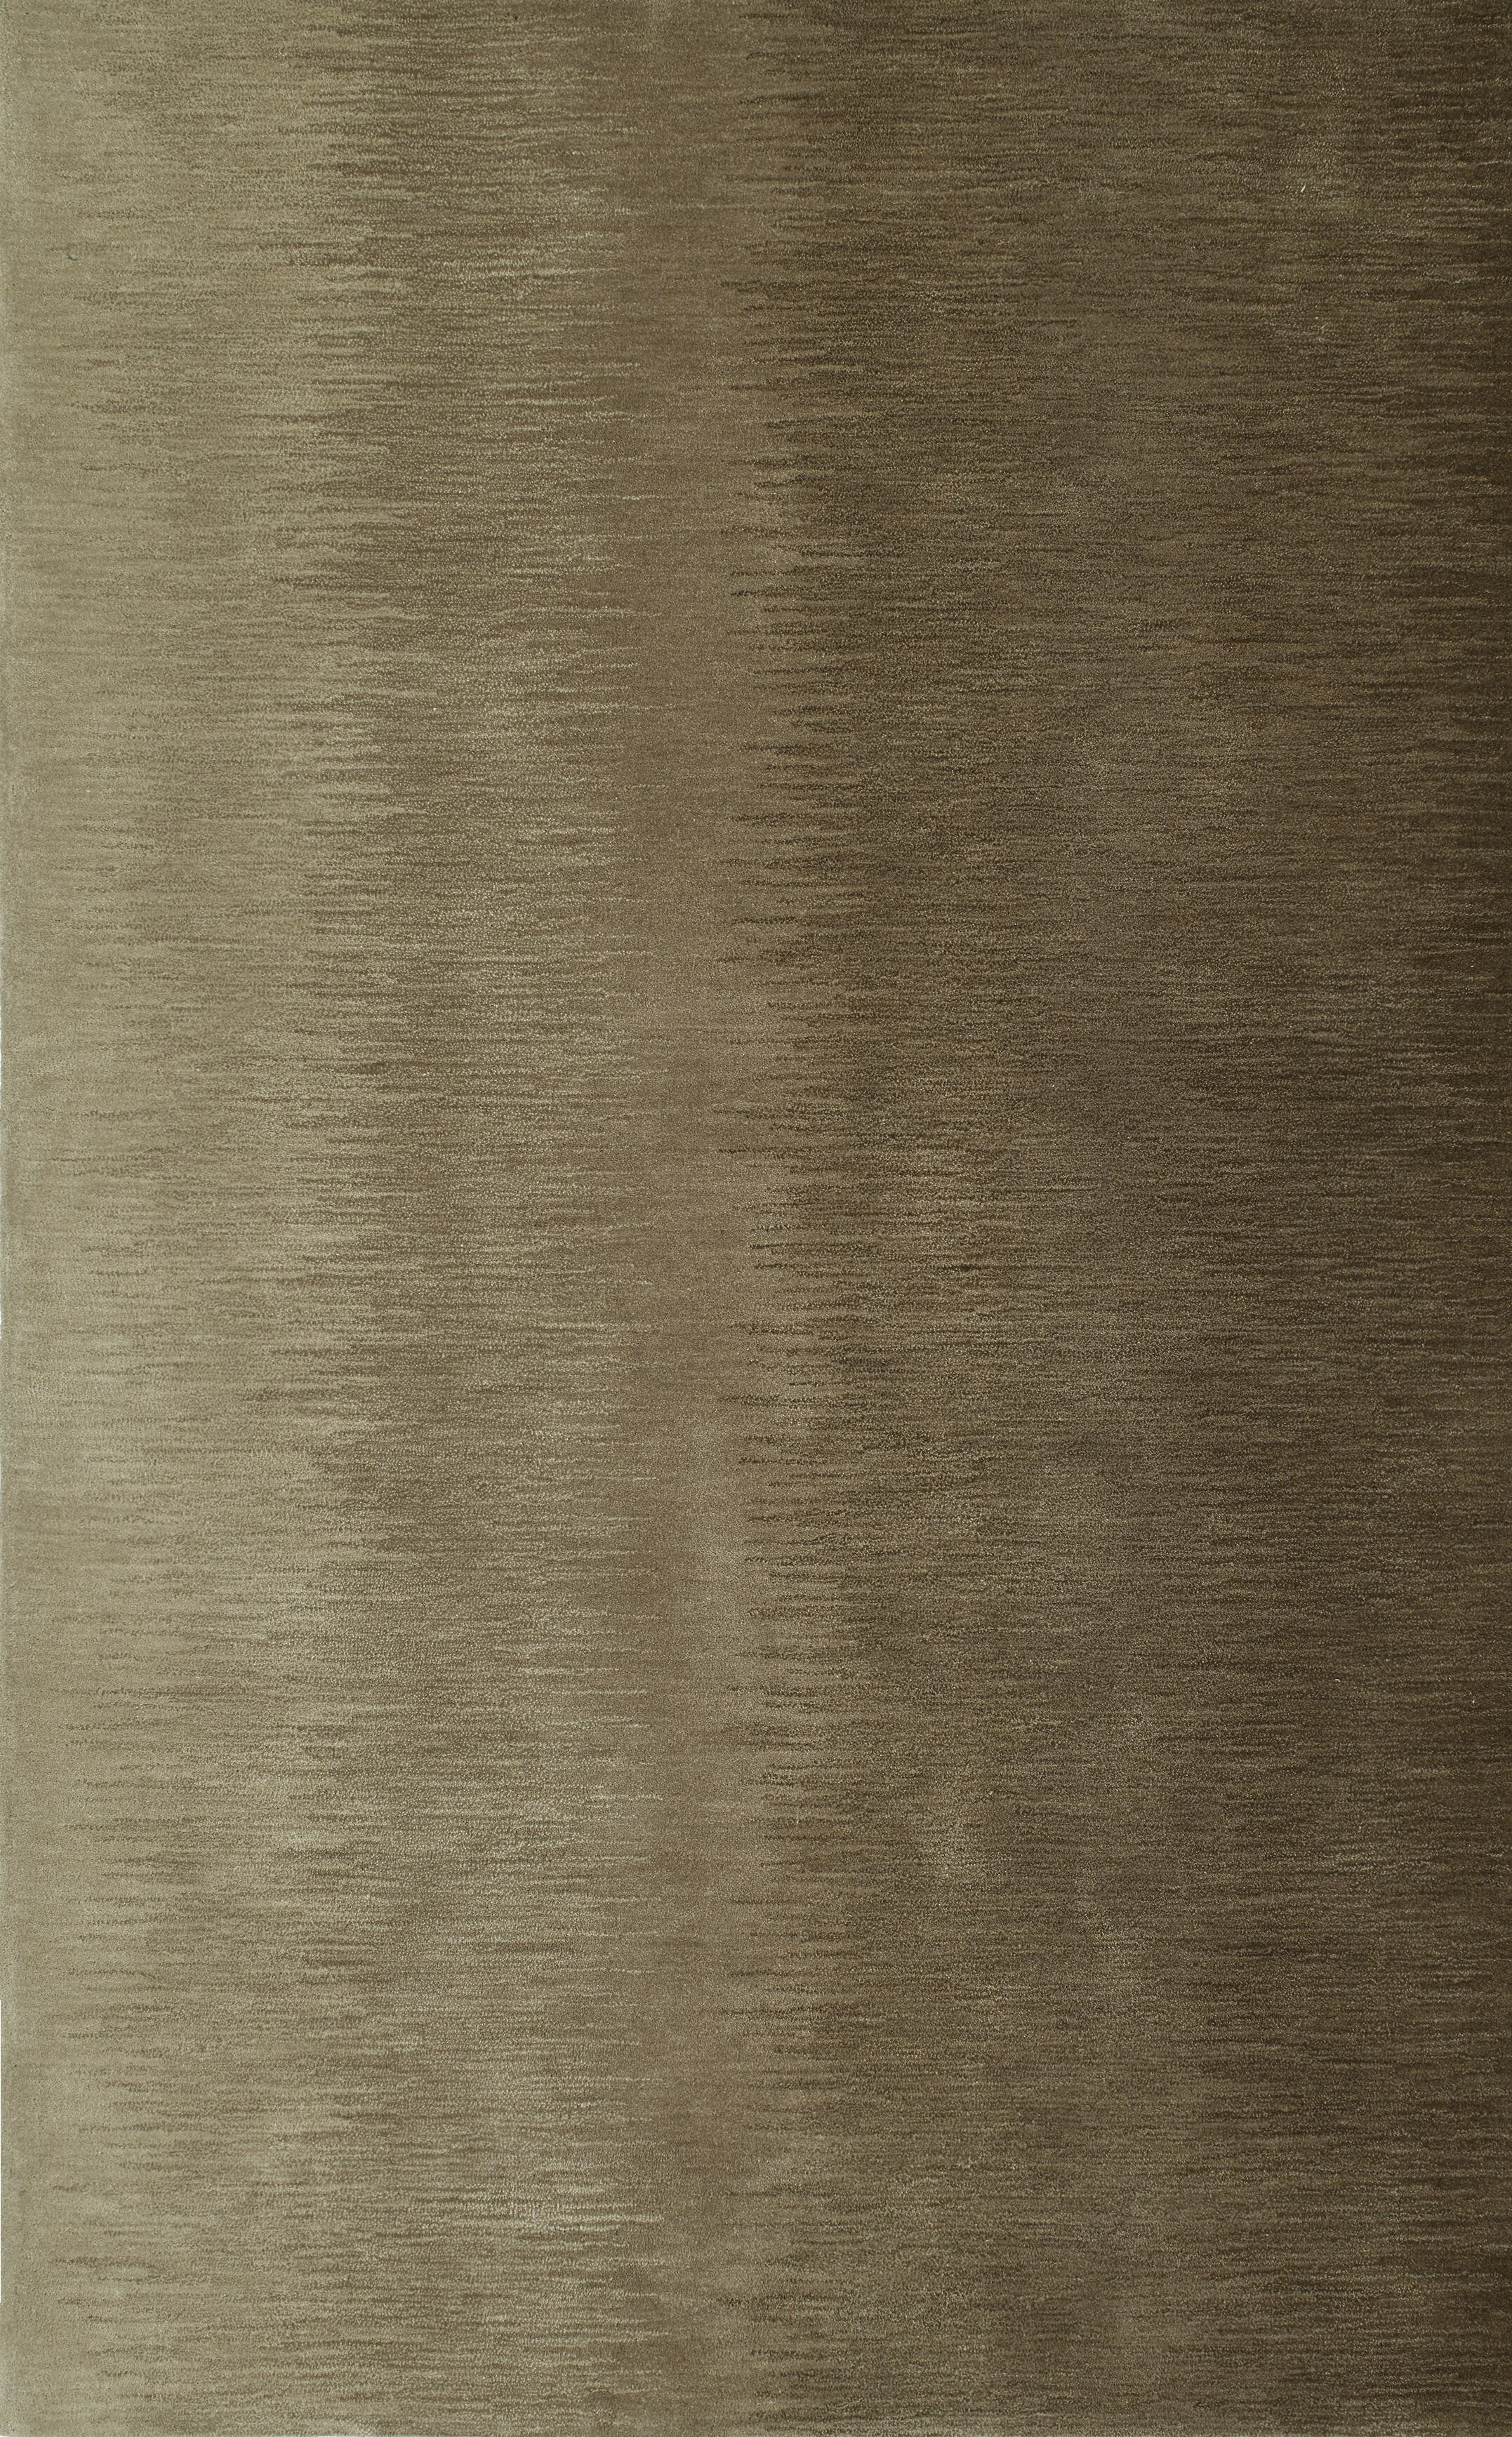 Delmar Hand-Tufted Taupe Area Rug Rug Size: Rectangle 5' x 7'6